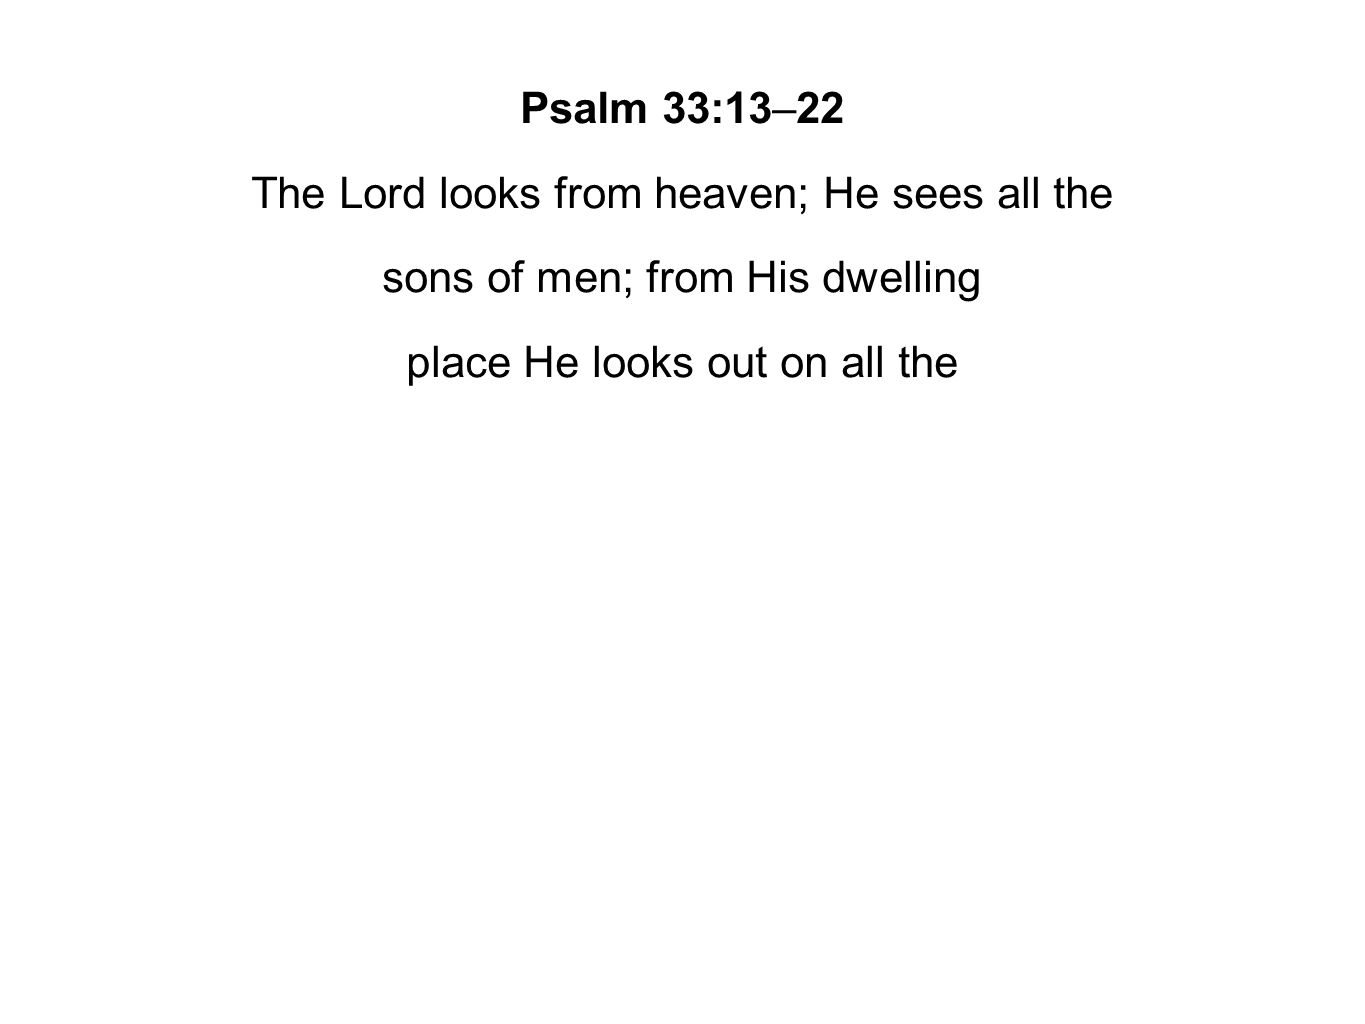 Psalm 33:13–22 The Lord looks from heaven; He sees all the sons of men; from His dwelling place He looks out on all the